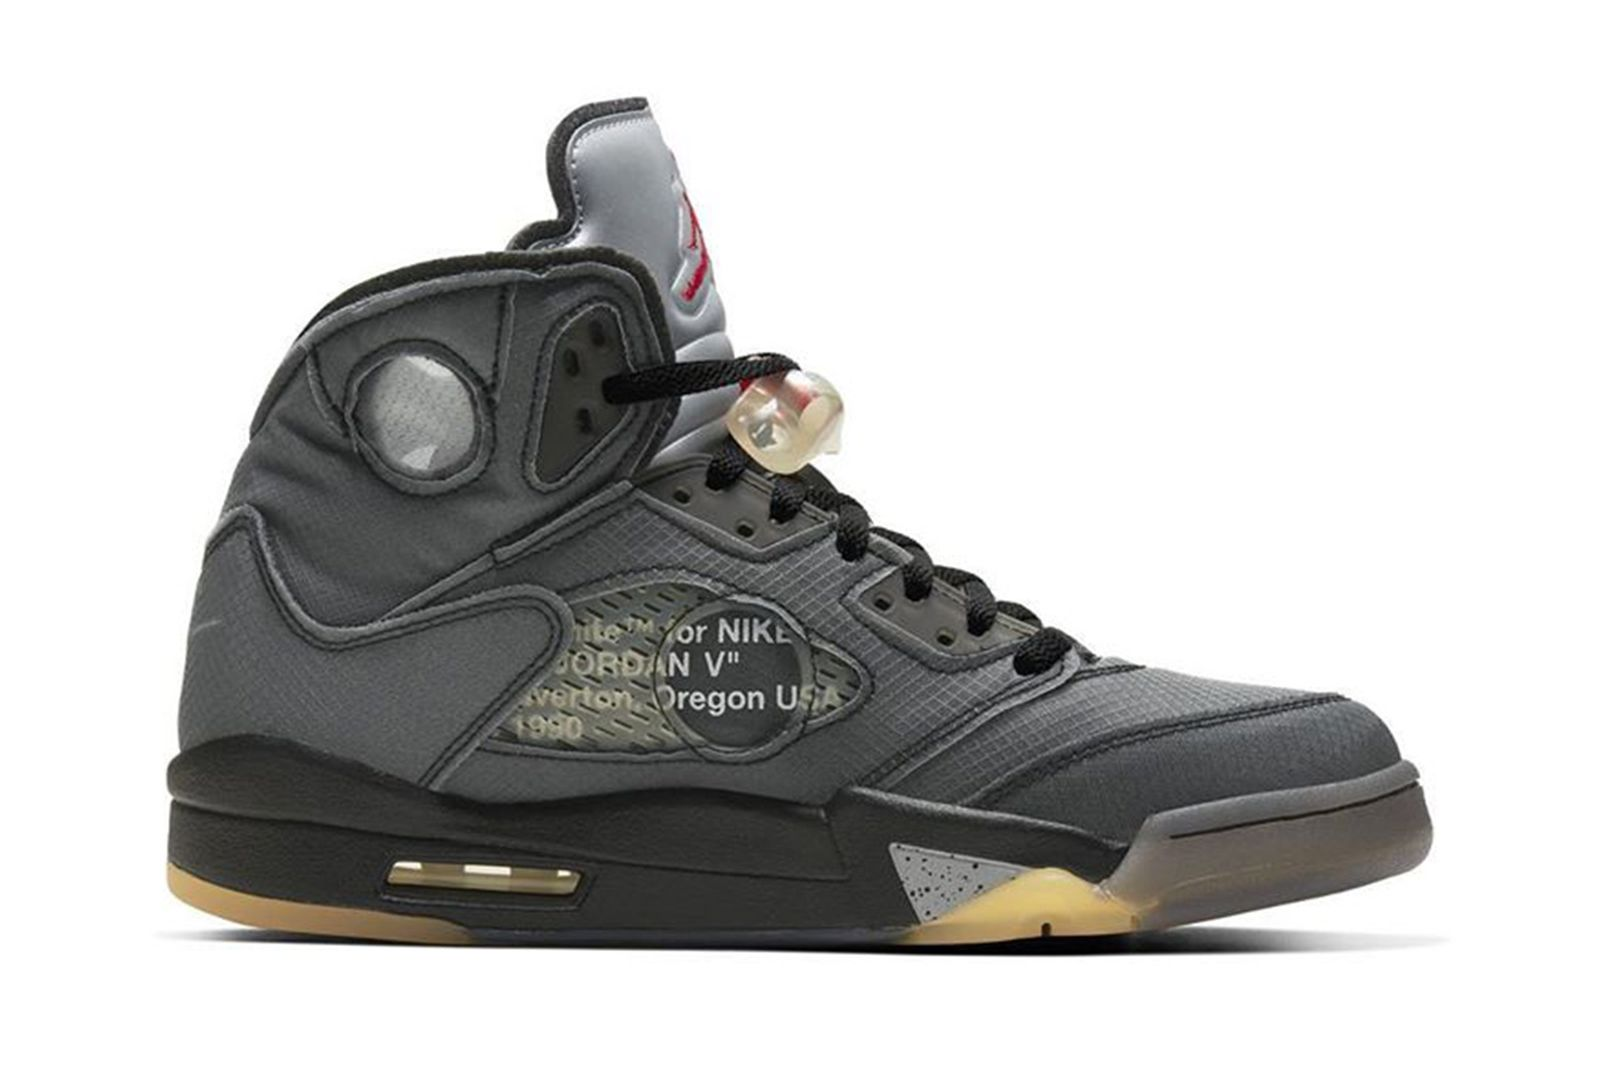 off-white-nike-air-jordan-5-release-date-price-official-product-05